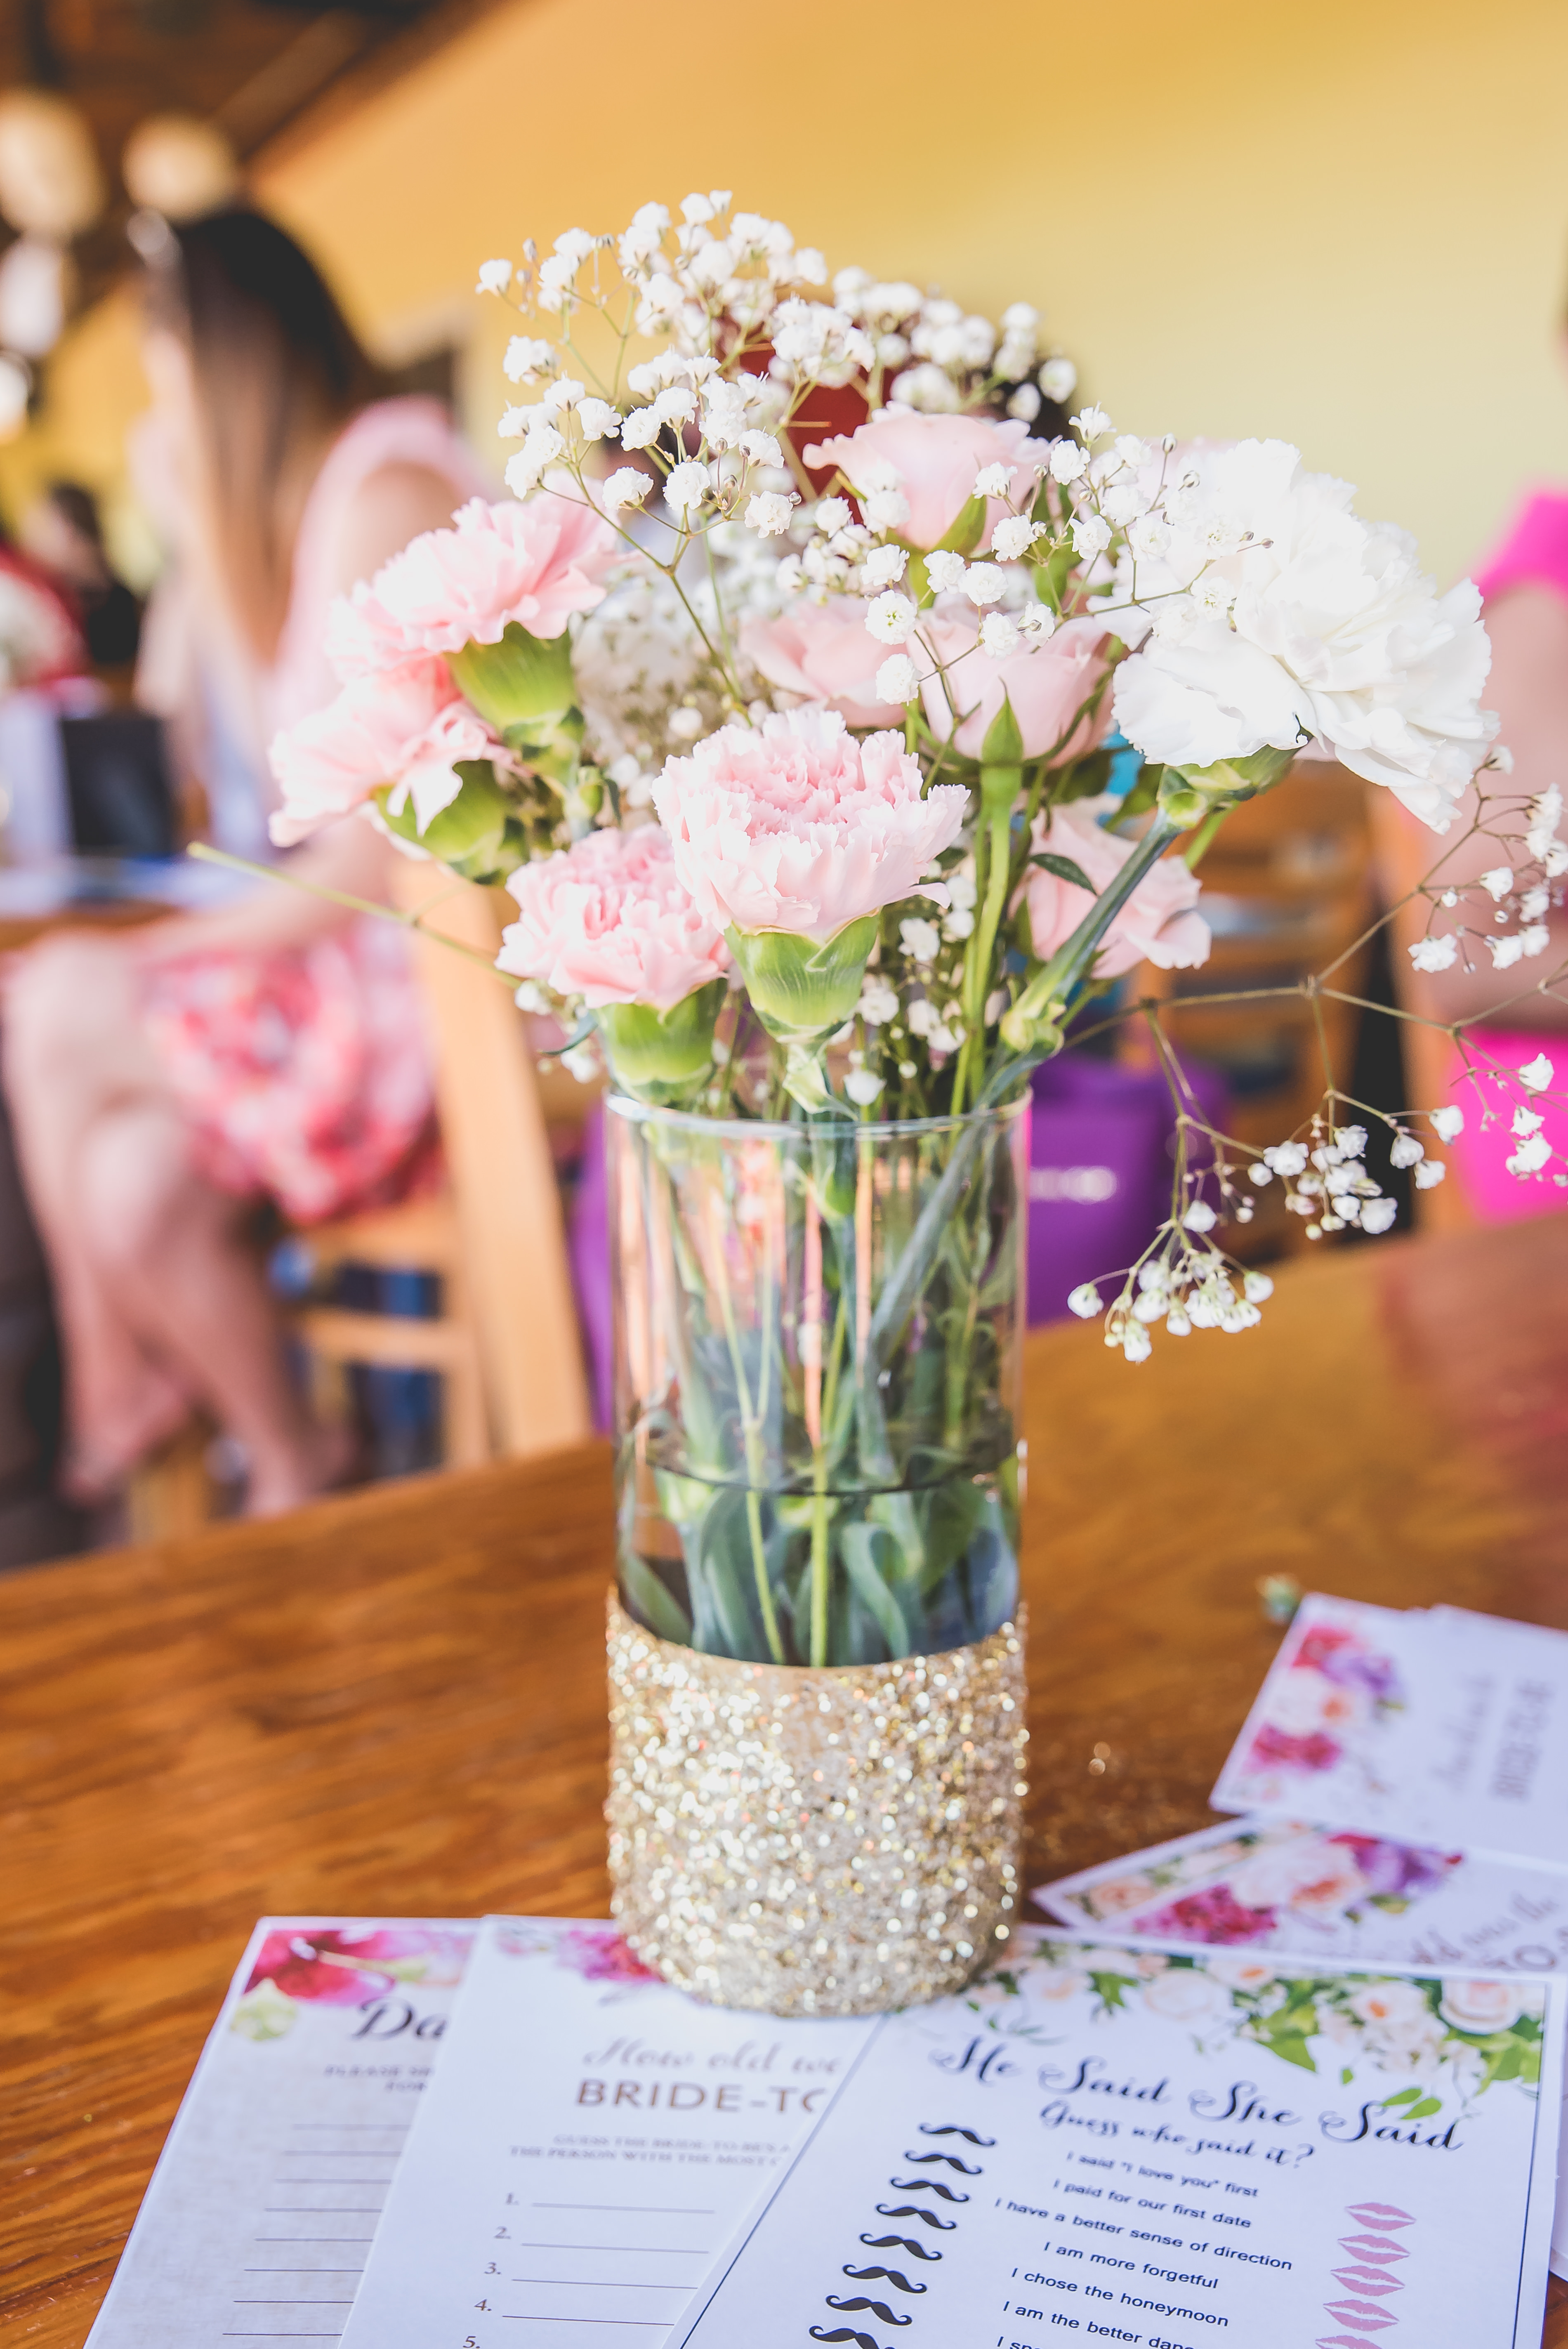 This vineyard bridal shower s special guests will make you